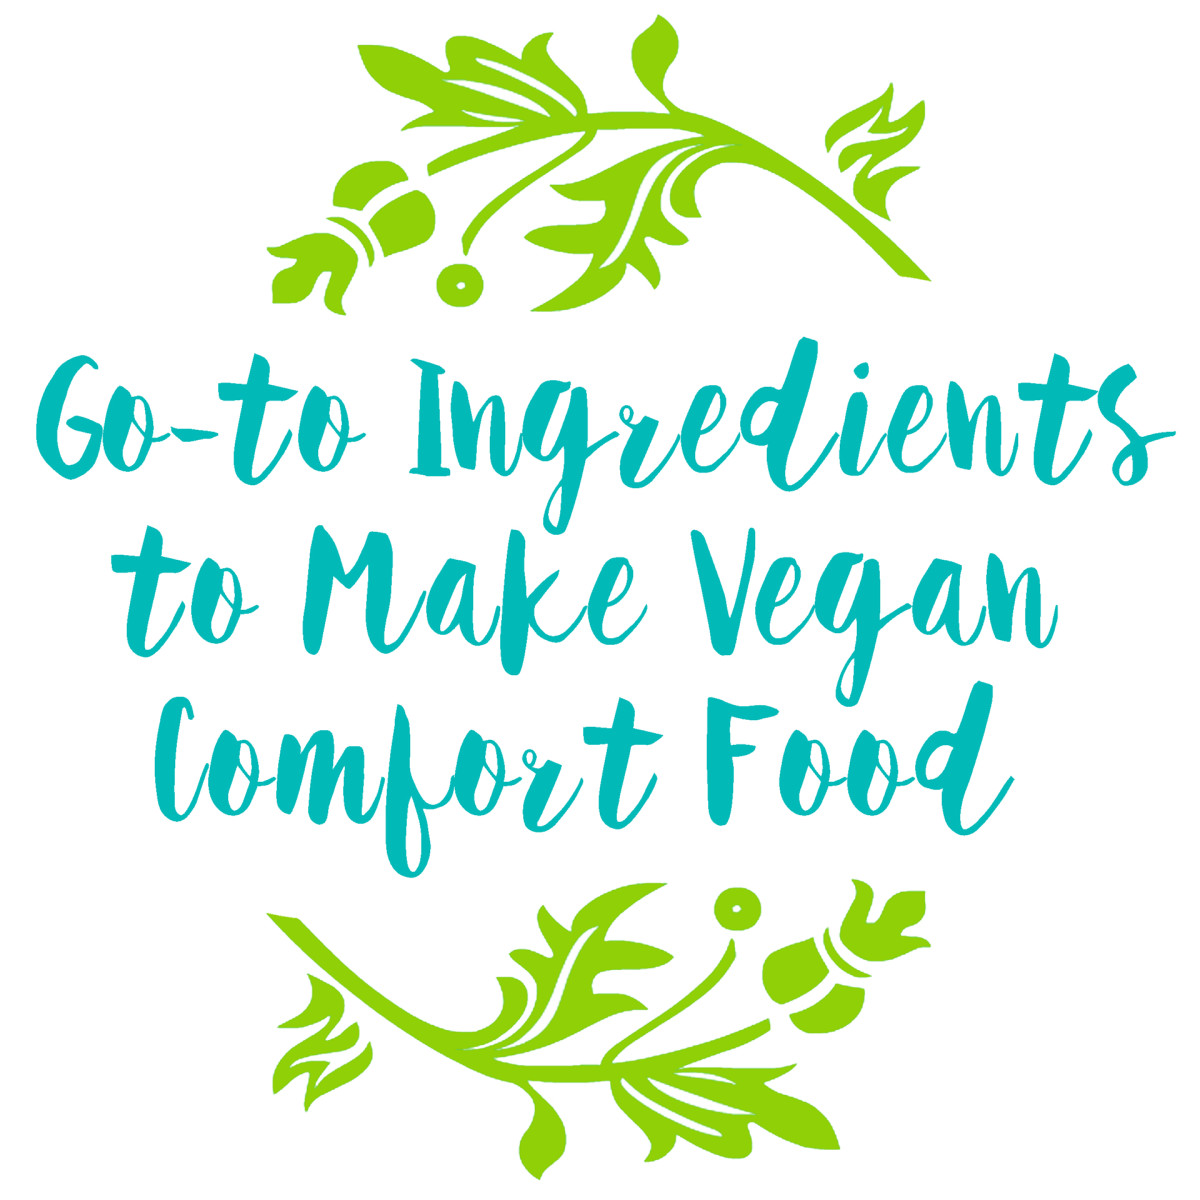 Vegan Comfort Food: Ingredients That Will Transform Your Meals